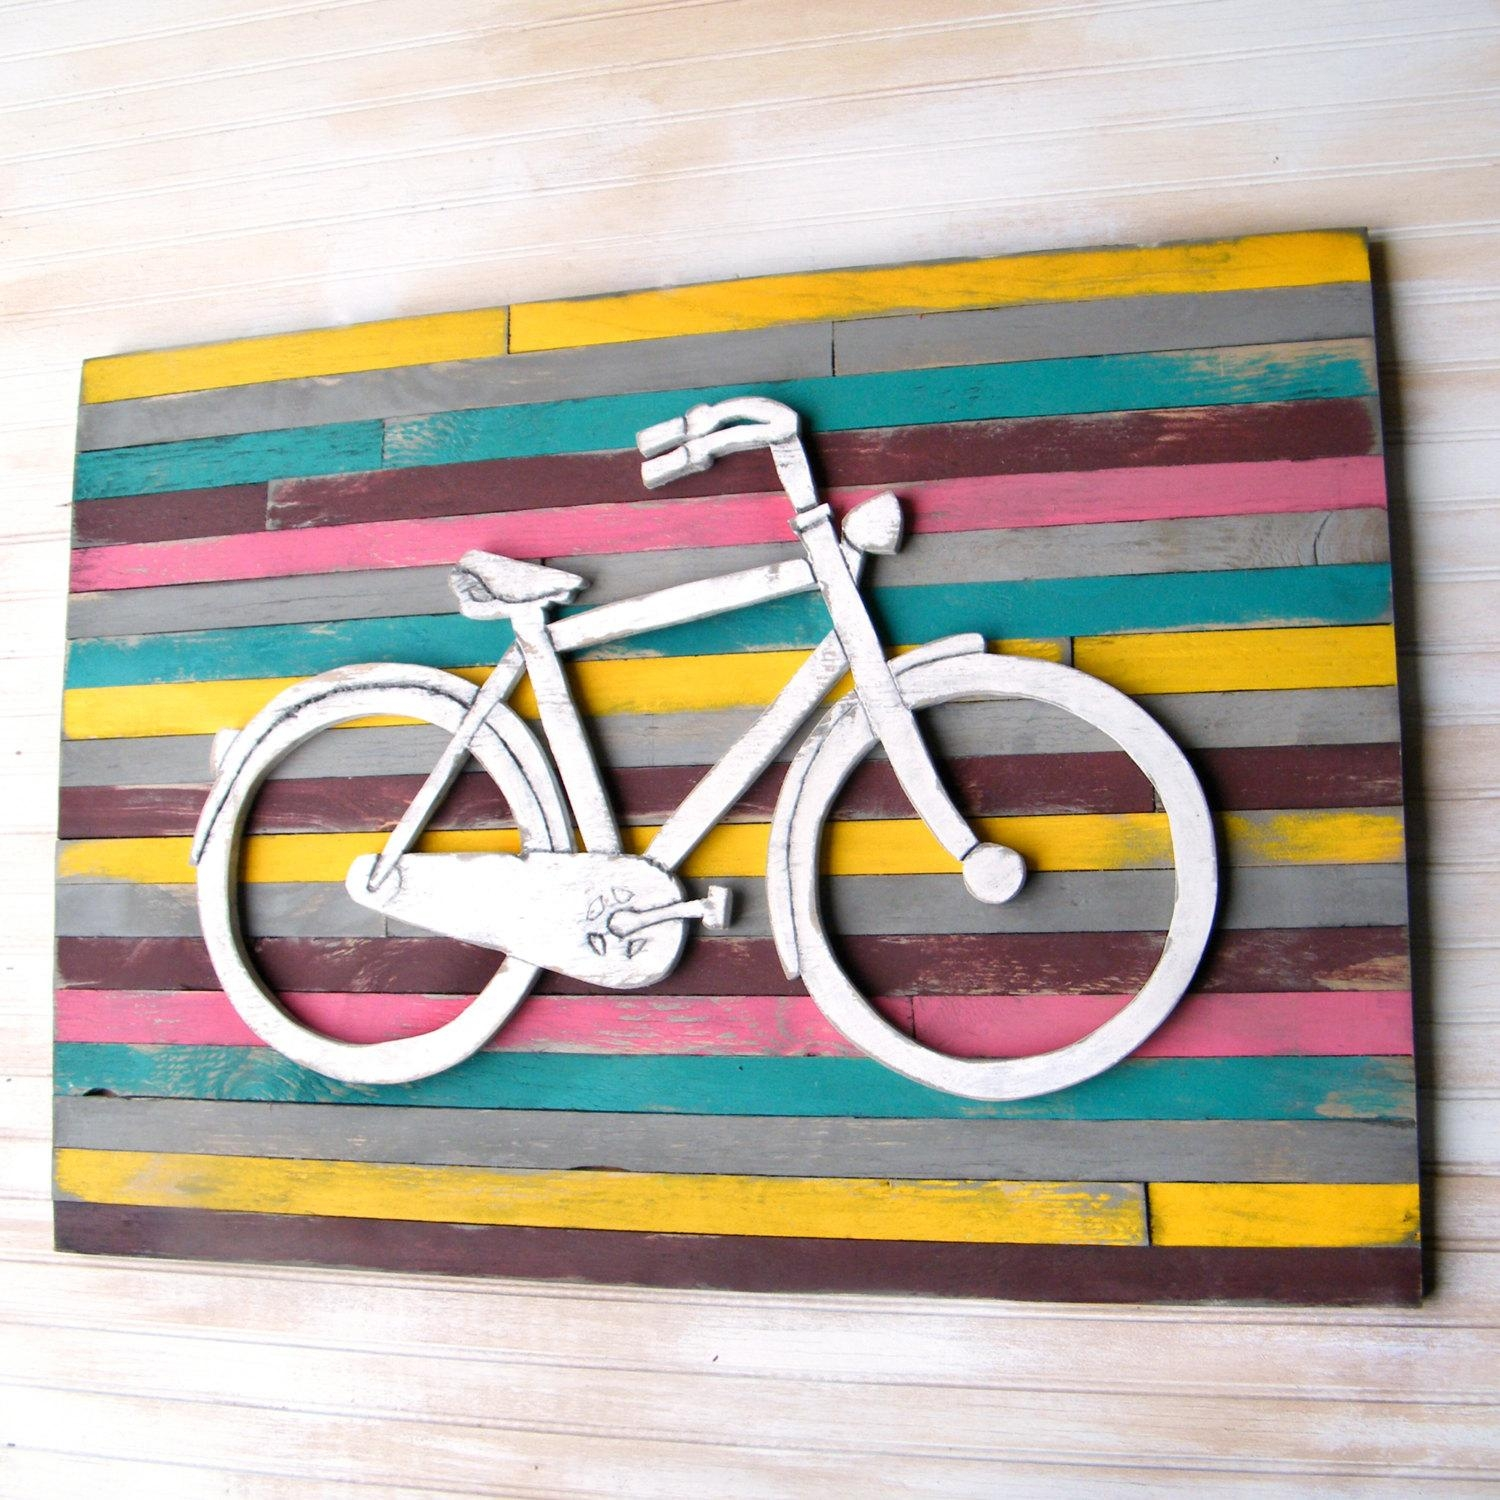 Bicycle Art Pallet Background Large Bicycle Wall Decor Wooden With Bicycle Wall Art Decor (Image 4 of 20)